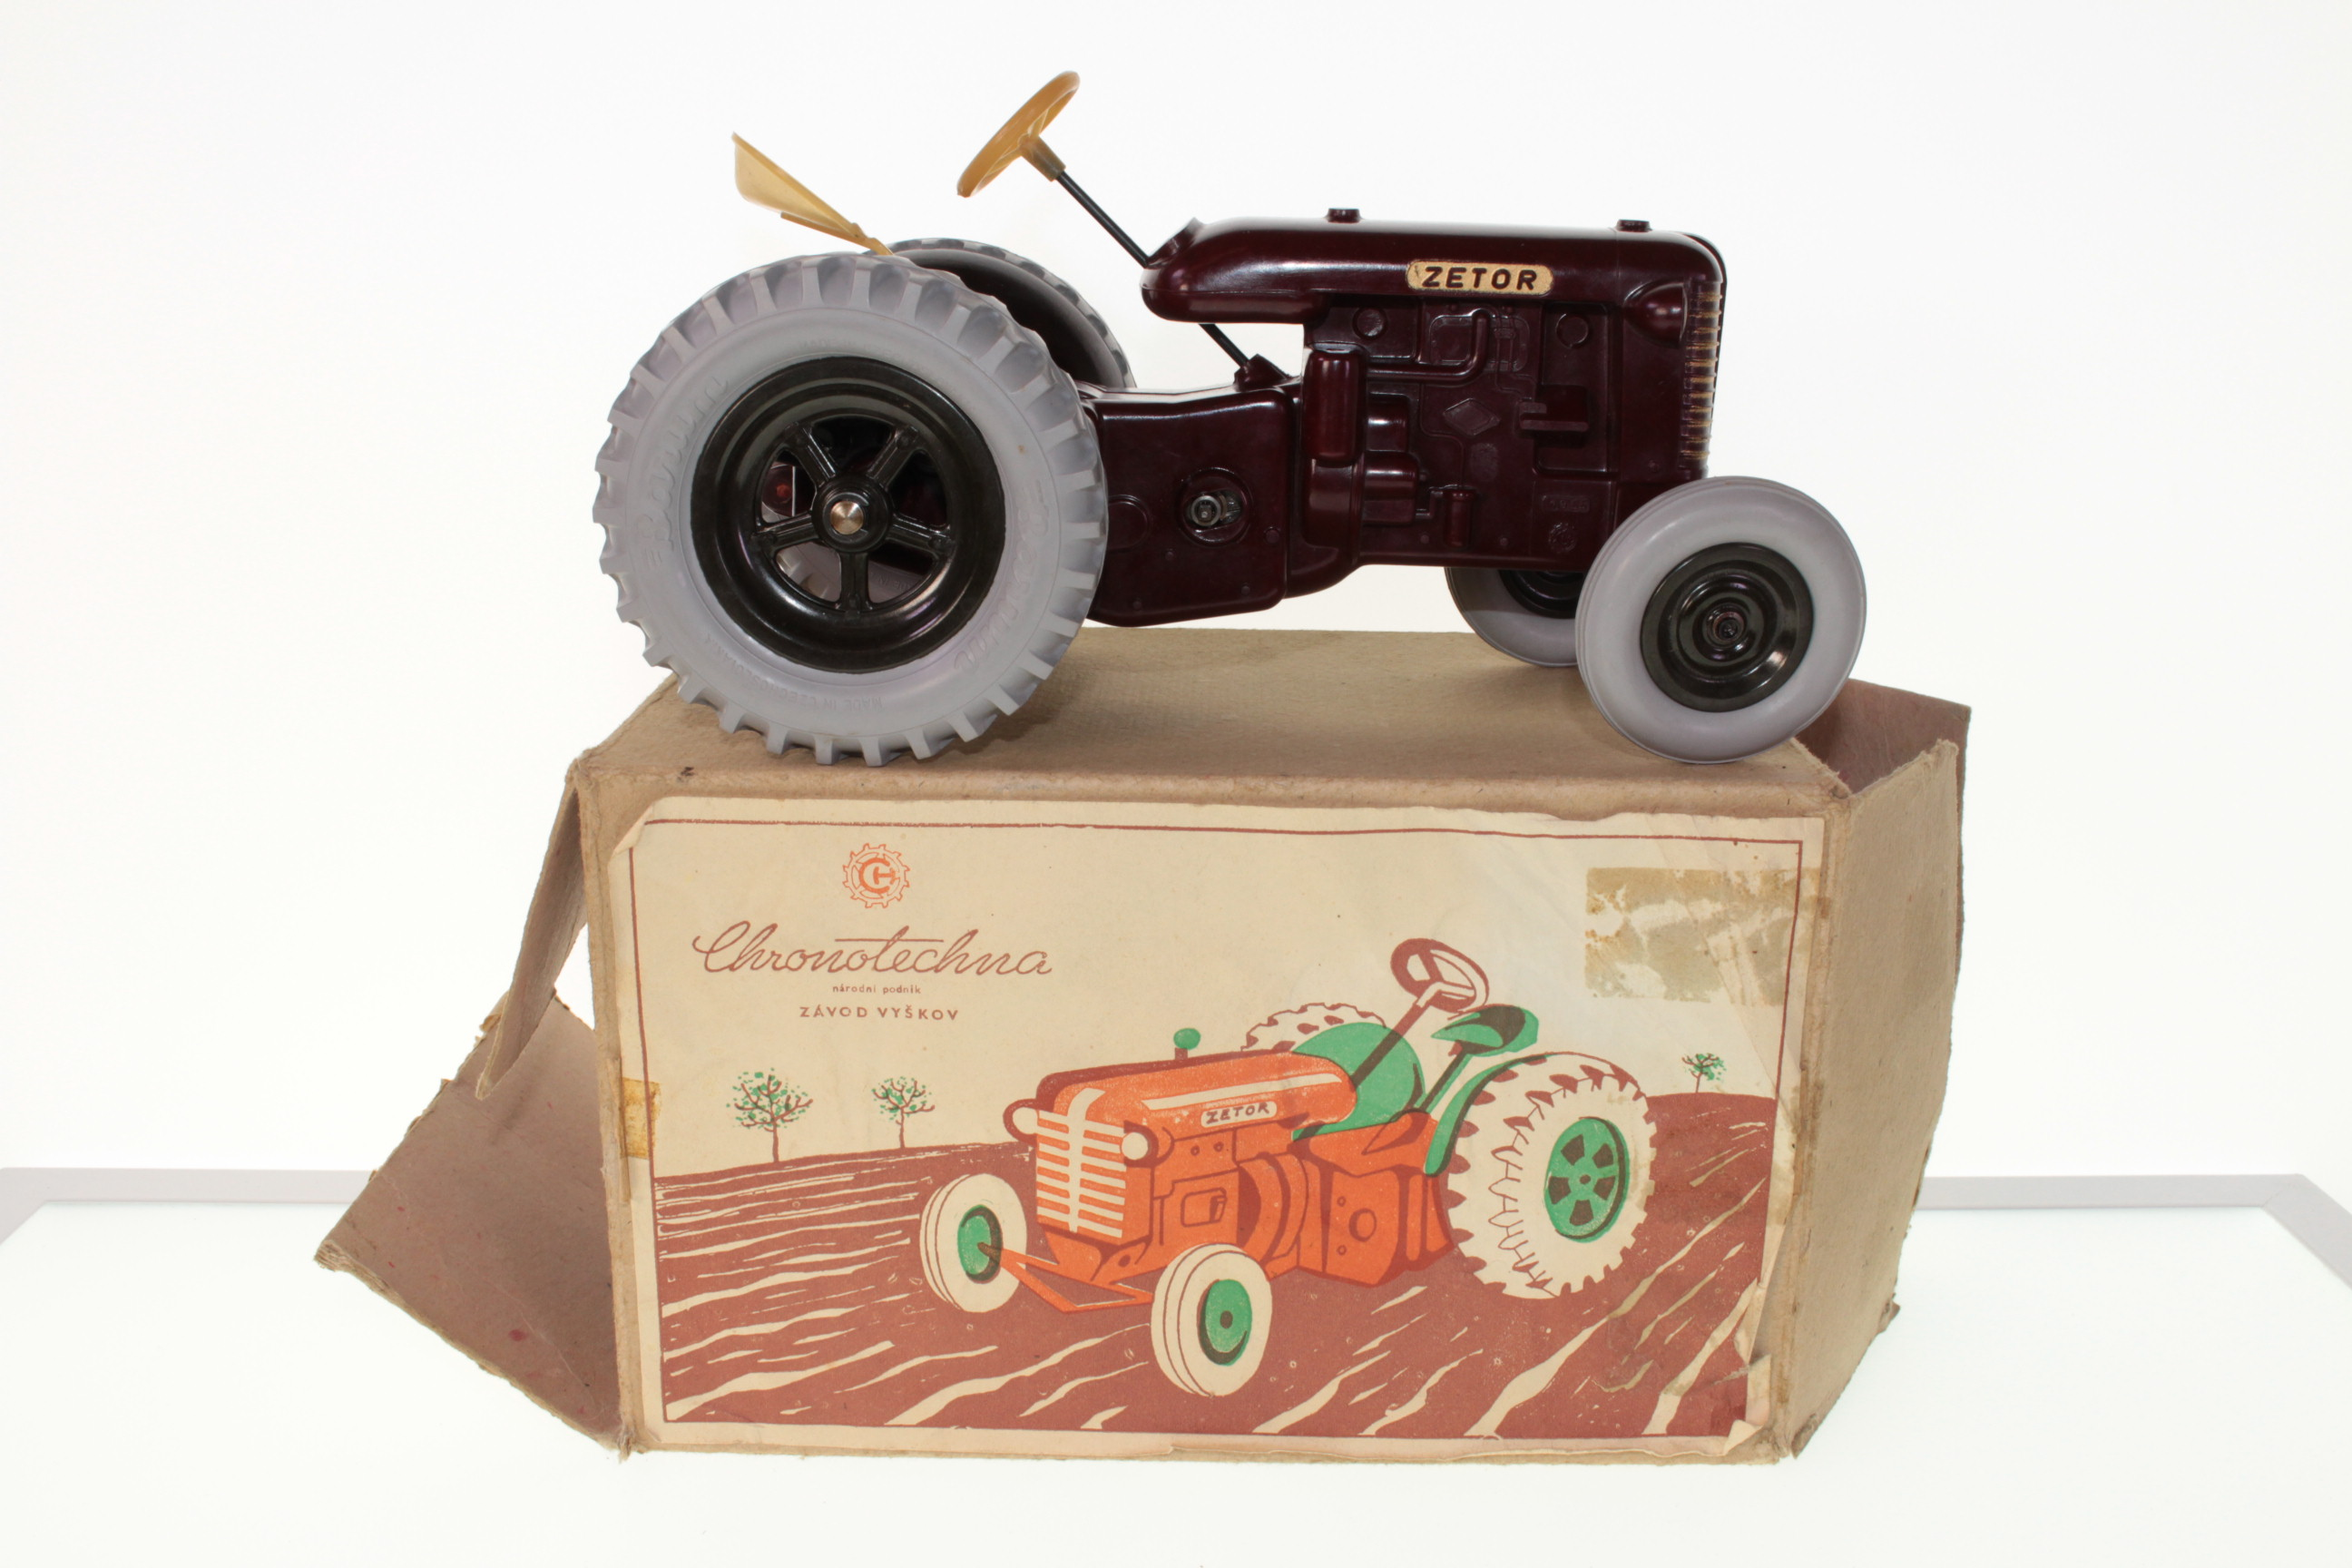 Picture Gallery for Chronotechna 137756 Zetor Clockwork Tractor